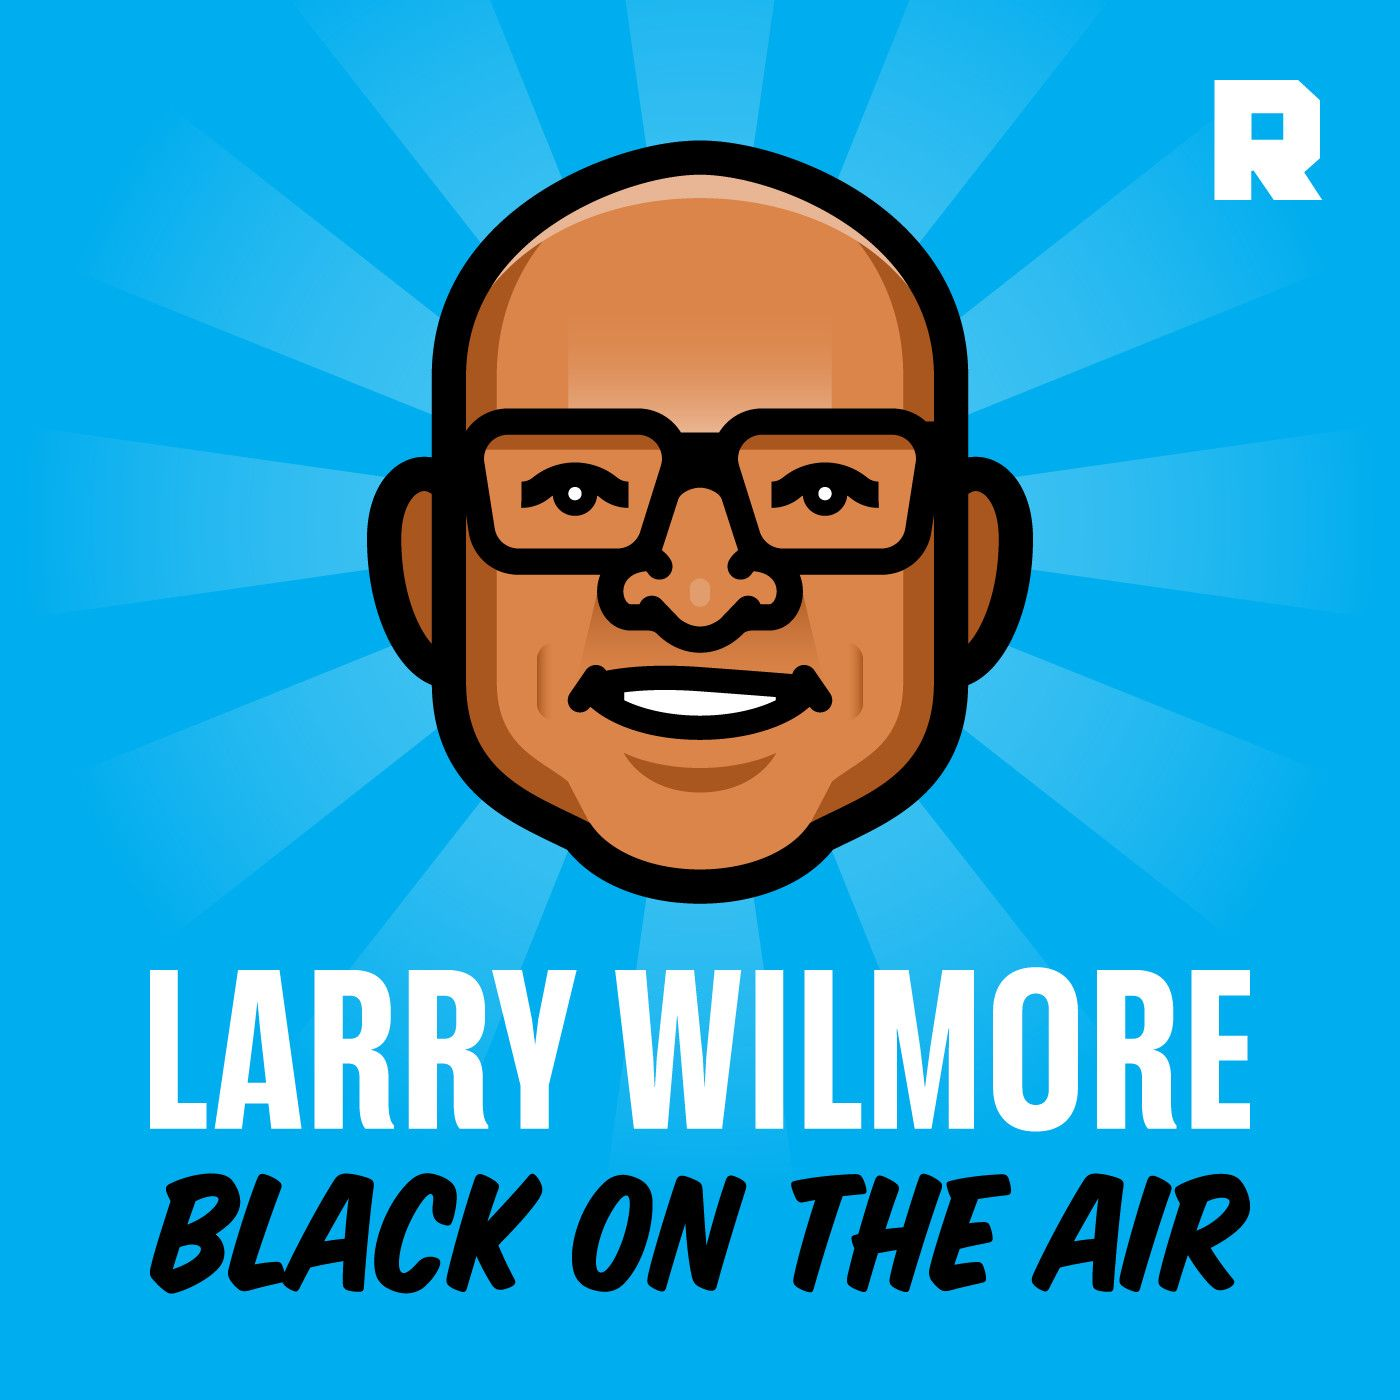 Emmy Award—winning producer, actor, and comedian Larry Wilmore is back on the air, hosting a podcast where he weighs in on the issues of the week and interviews guests in the worlds of politics, entertainment, culture, sports, and beyond.